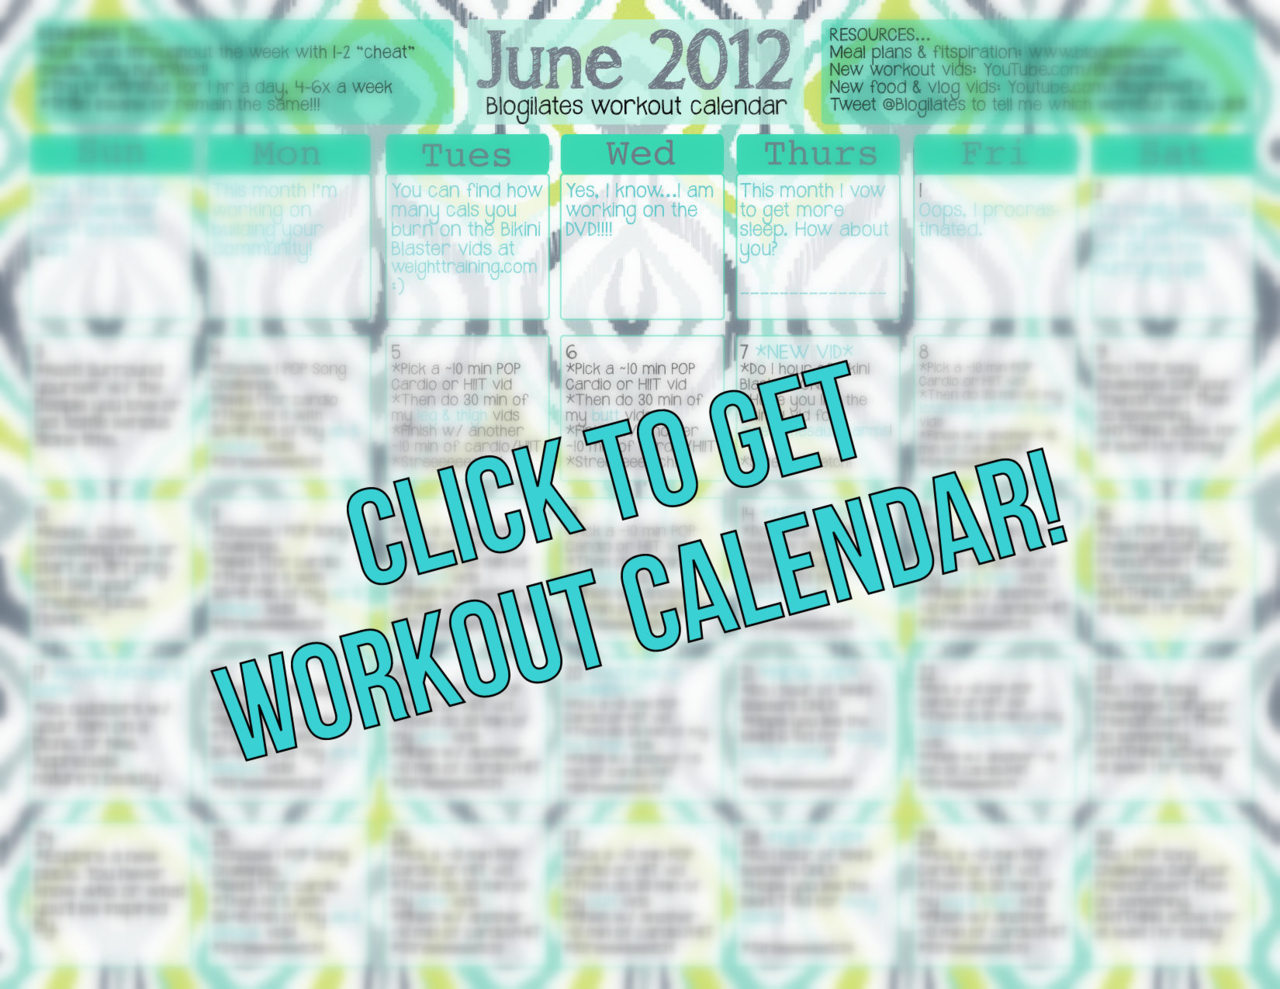 I just released the first ever Blogilates Workout Calendar for June 2012! To get the secret password to view it, please sign up for my newsletter (free) and I will email it to you. You can sign up here (top right hand corner of blog). Sign up now because I will email again before I go to bed. Enjoy POPsters! Love you so much :) <3 Cassey PS…if nothing is loading, I'm really sorry. It must be the traffic. Try to come back later after the traffic from this post dies down. I'm trying to take care of the issue ASAP. Hopefully I can handle all u guys at once by the end of the week :) Thanks for your patience.